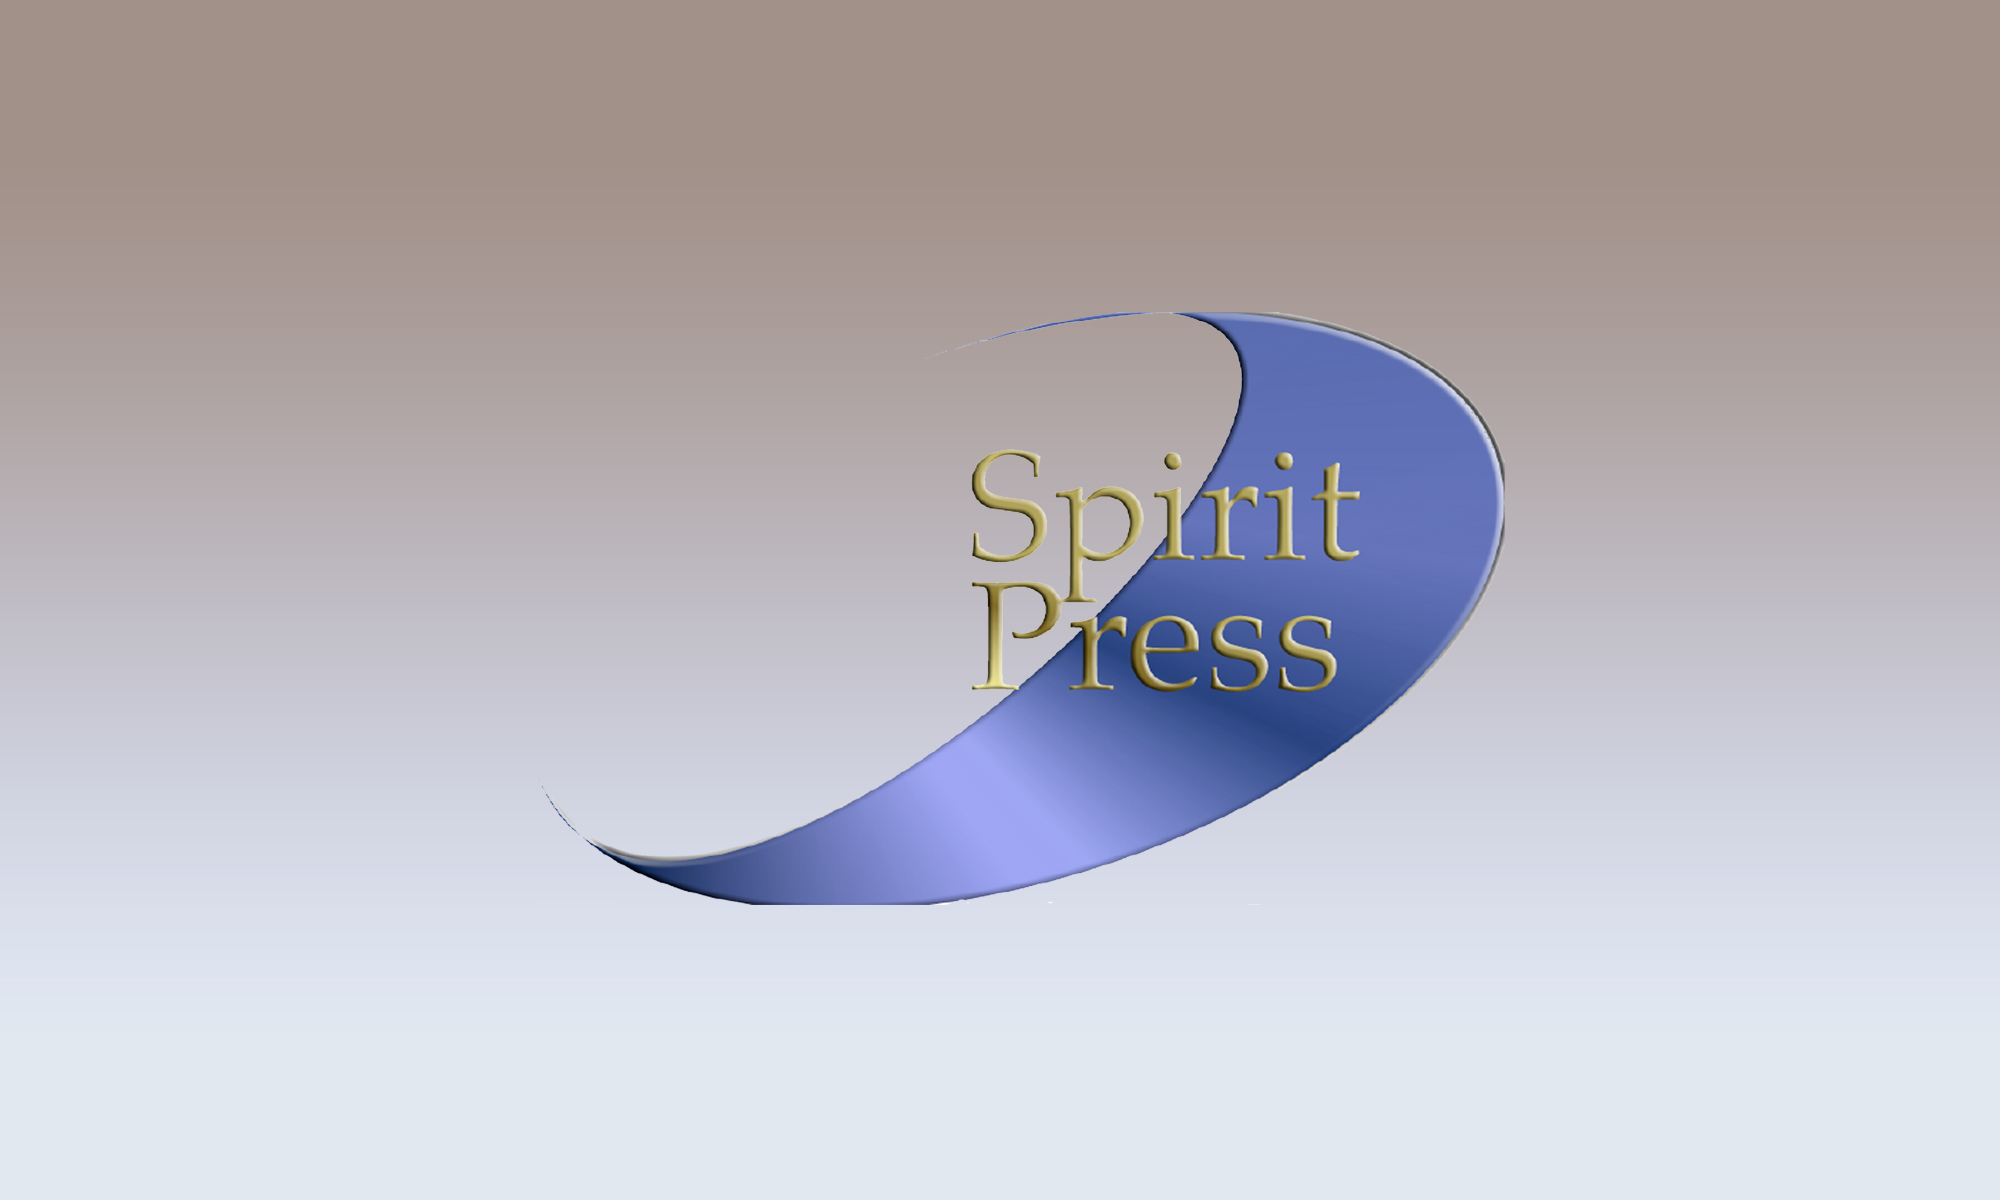 One Spirit Press